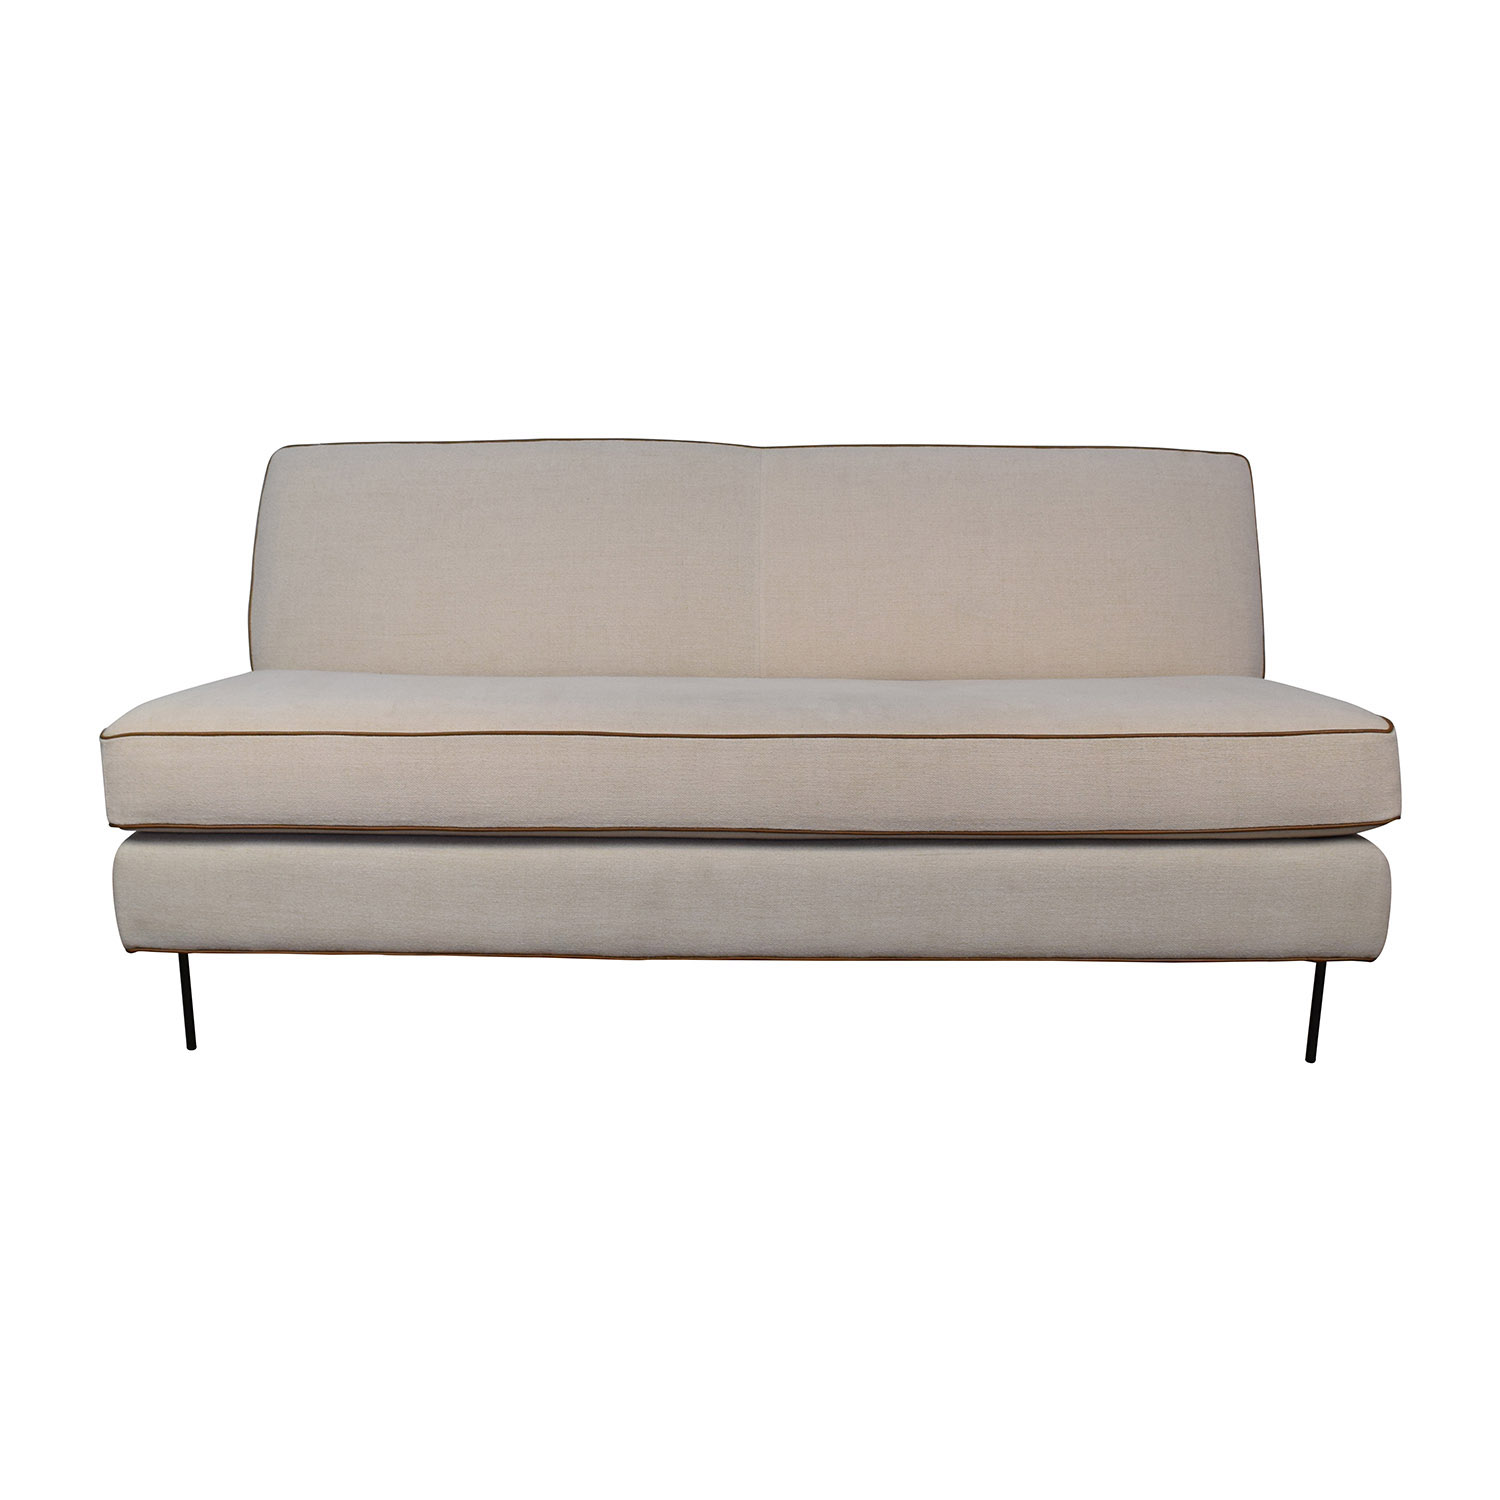 off  simmon li simmon li monarch dark brown sofa  sofas - west elm west elm commune armless sofa on sale